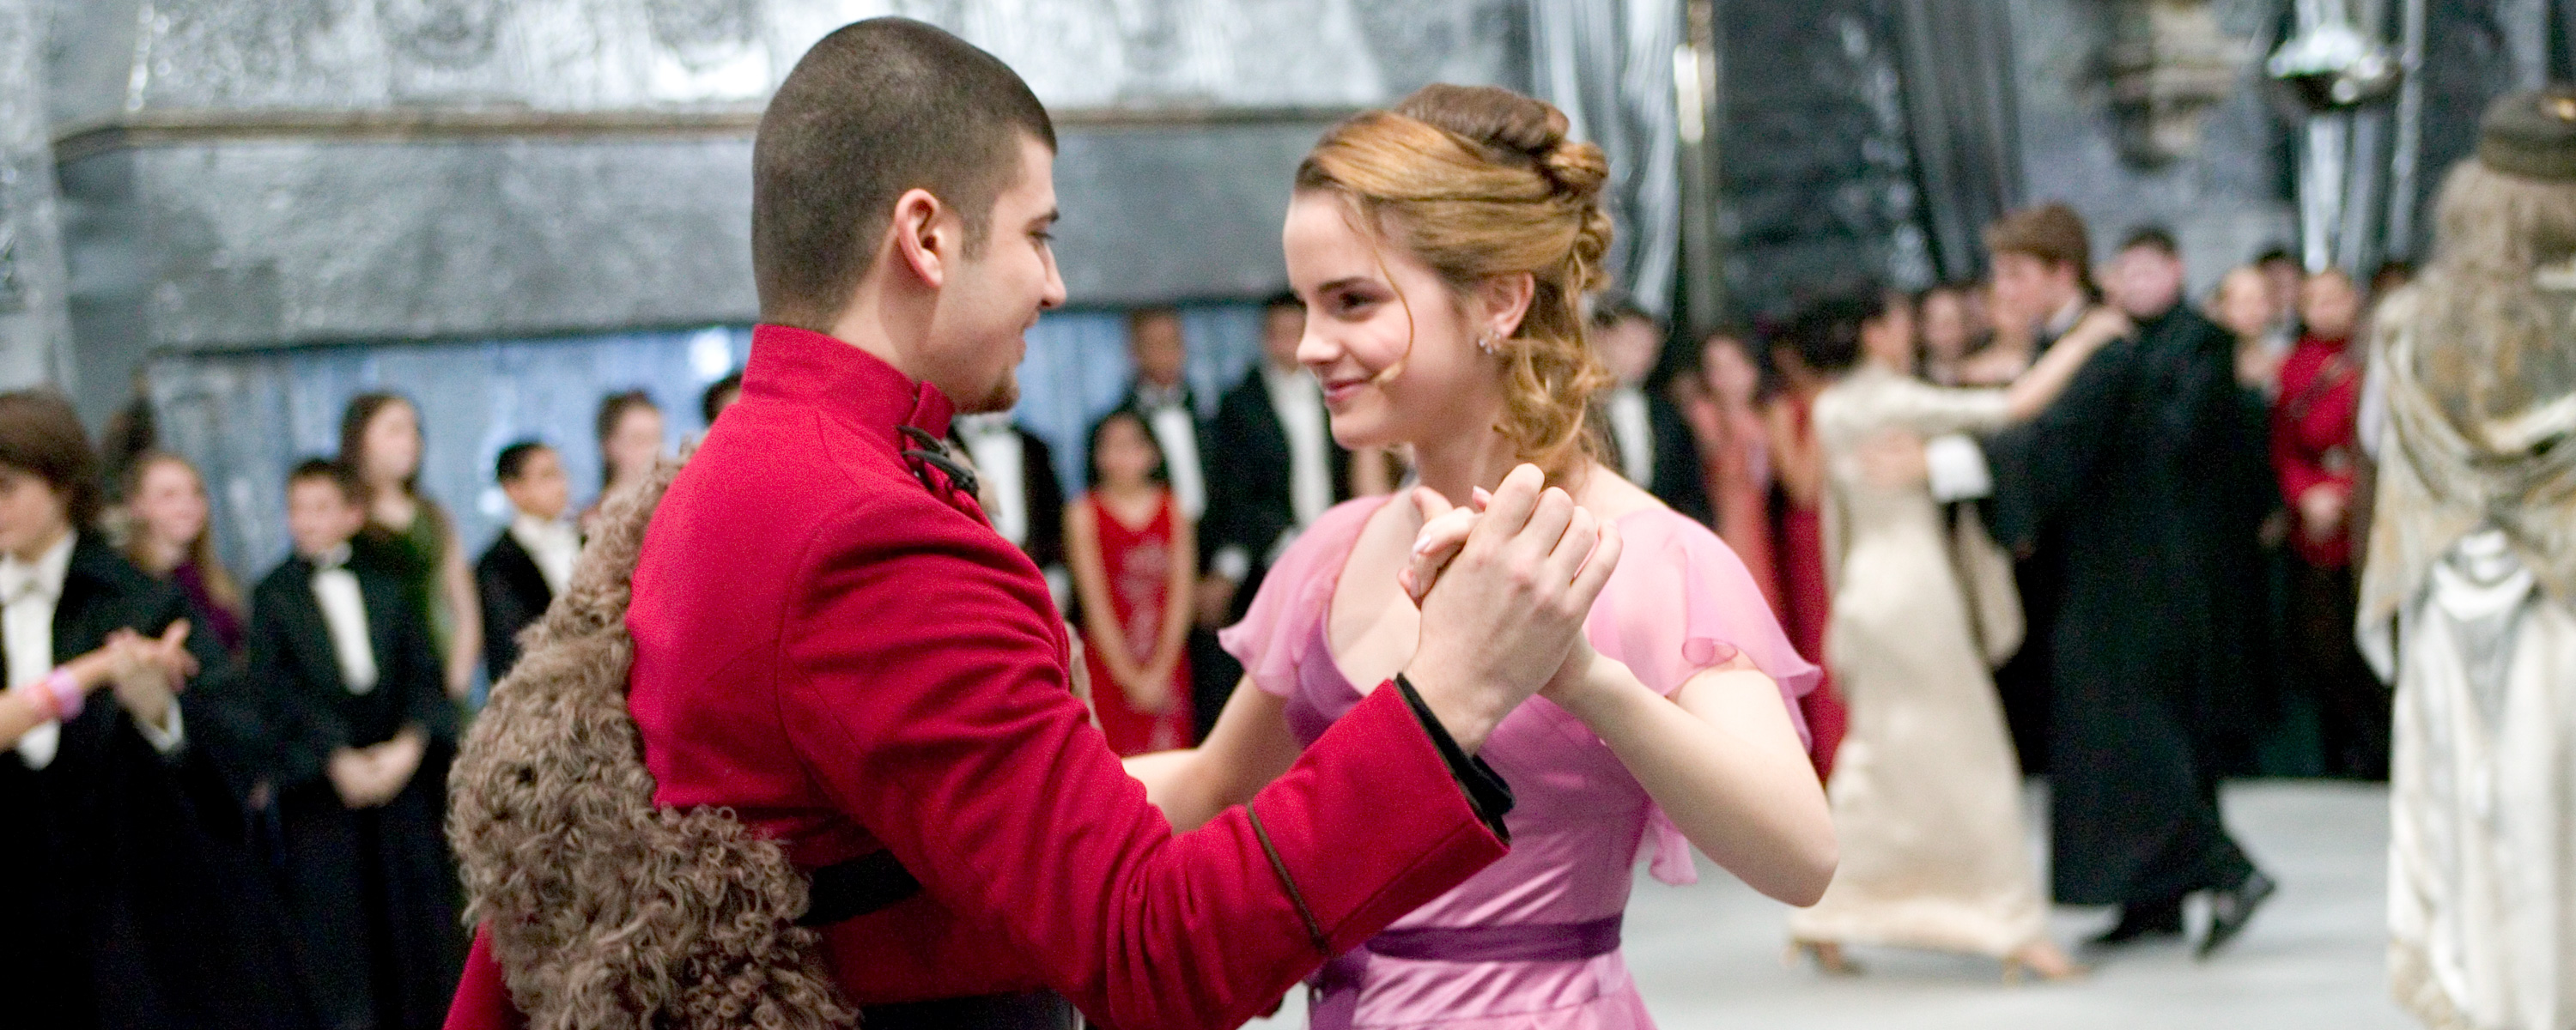 Things We Loved When International Magical Co Operation Came To Hogwarts Wizarding World Bonus chapter yule ball year 4. wizarding world